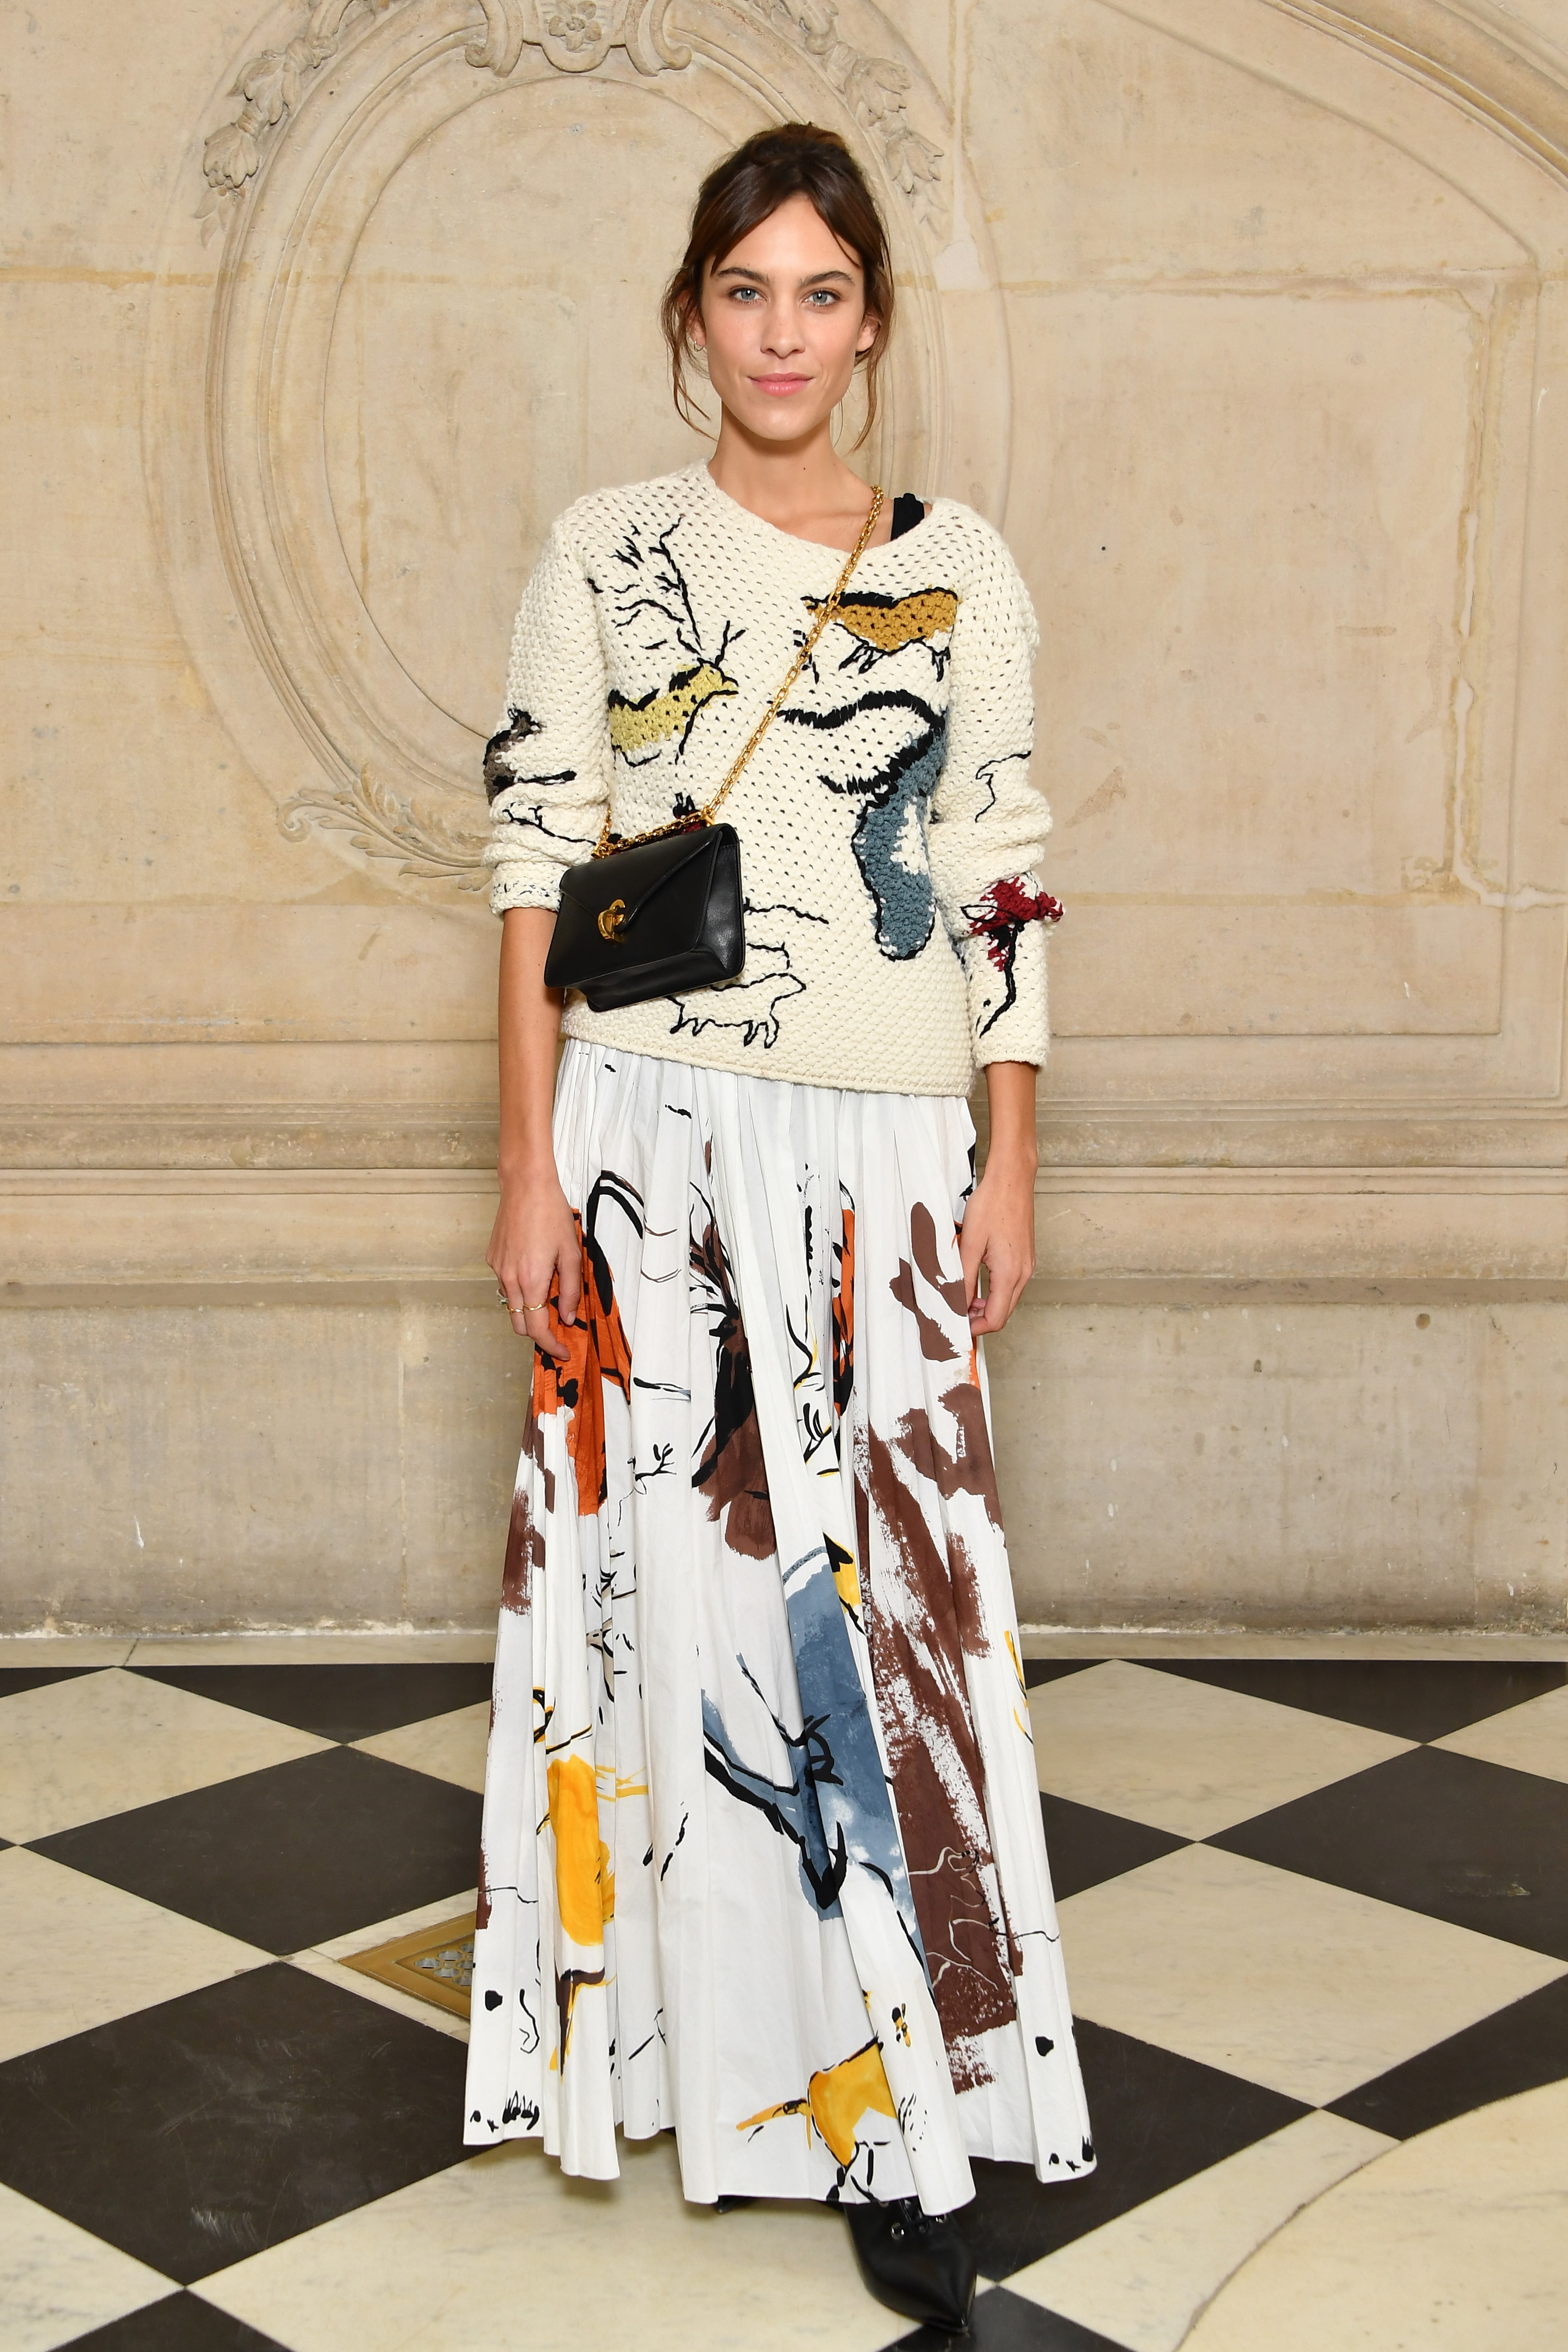 PARIS, FRANCE - SEPTEMBER 26: Alexa Chung attends the Christian Dior show as part of the Paris Fashion Week Womenswear Spring/Summer 2018 on September 26, 2017 in Paris, France. (Photo by Pascal Le Segretain/Getty Images for Dior) *** Local Caption *** Alexa Chung